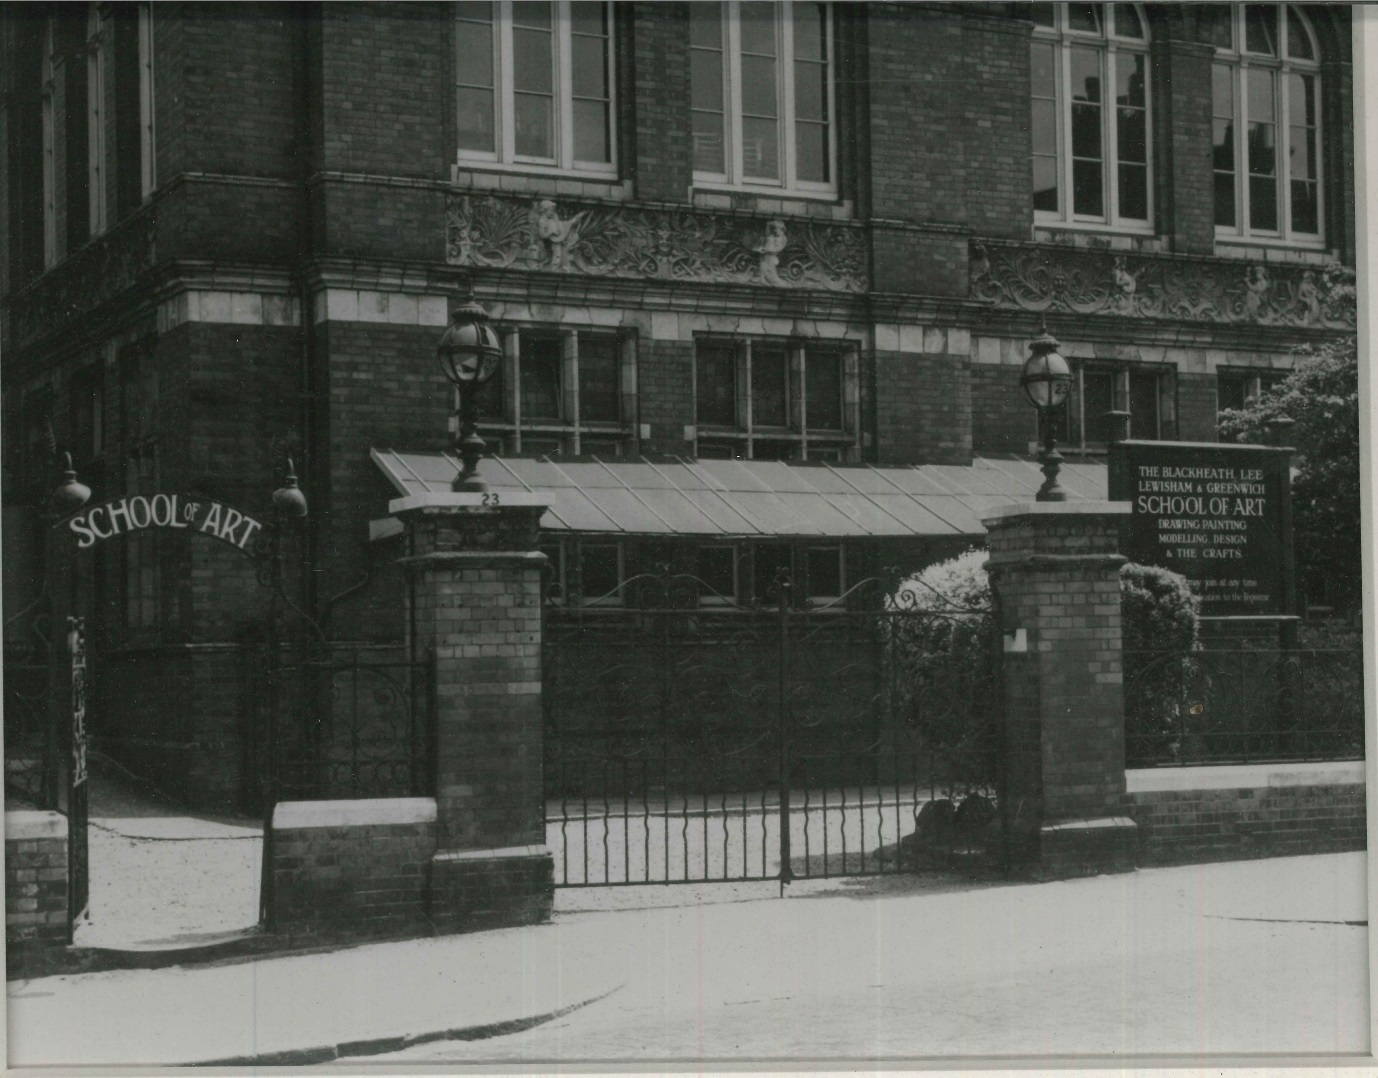 Entrance gate to the Blackheath School of Art, circa 1930s.